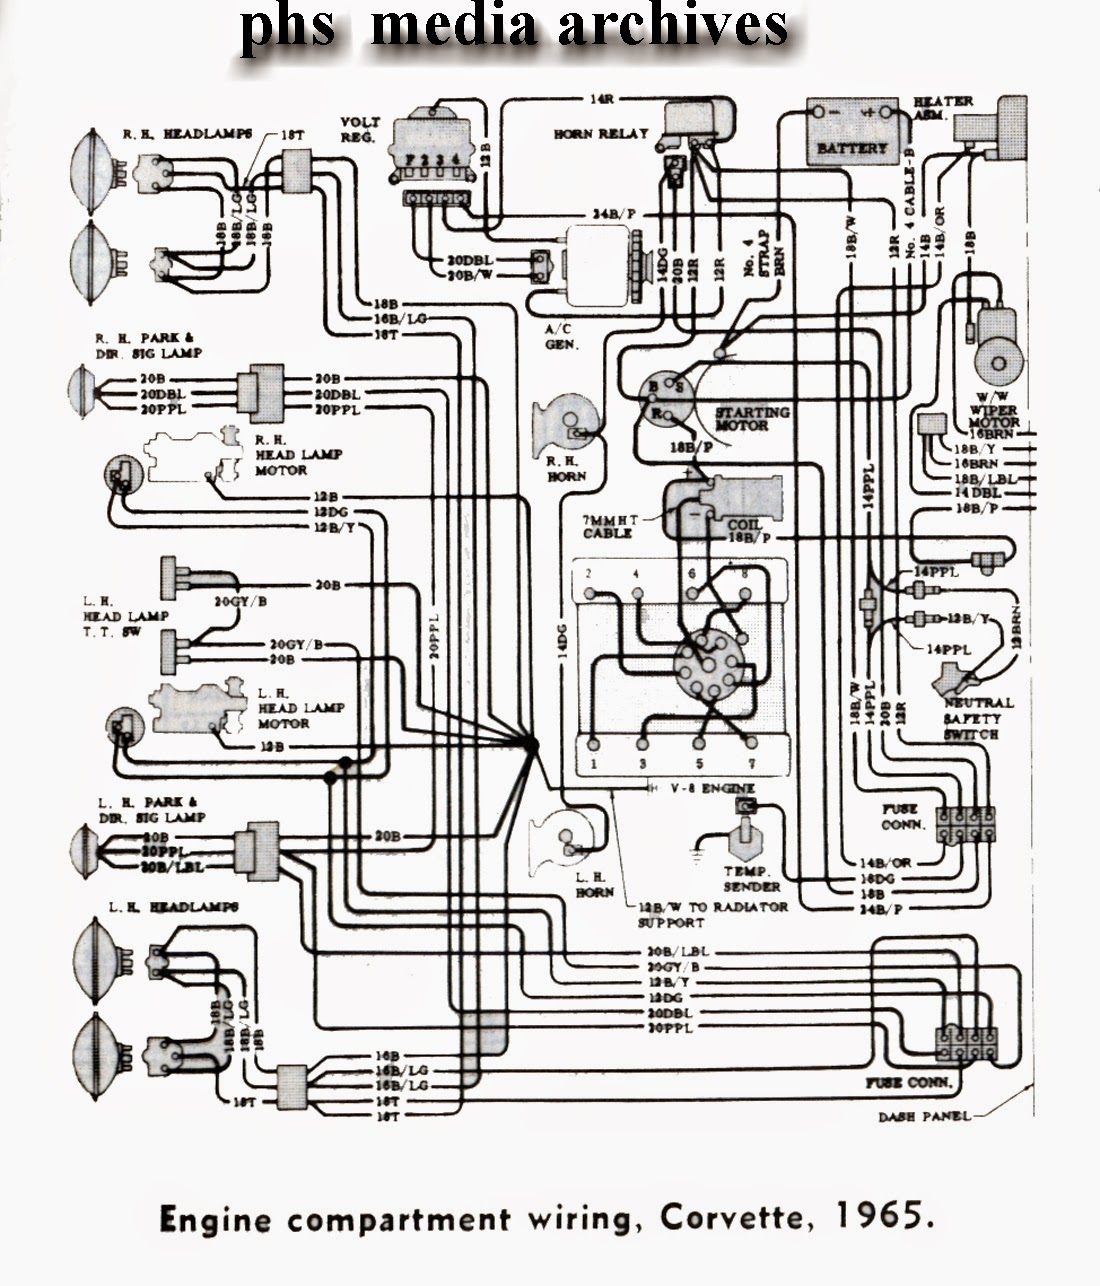 1967 camaro wiring schematic 1967 image wiring diagram 1969 camaro fuse box wiring diagram 1969 wiring diagrams on 1967 camaro wiring schematic